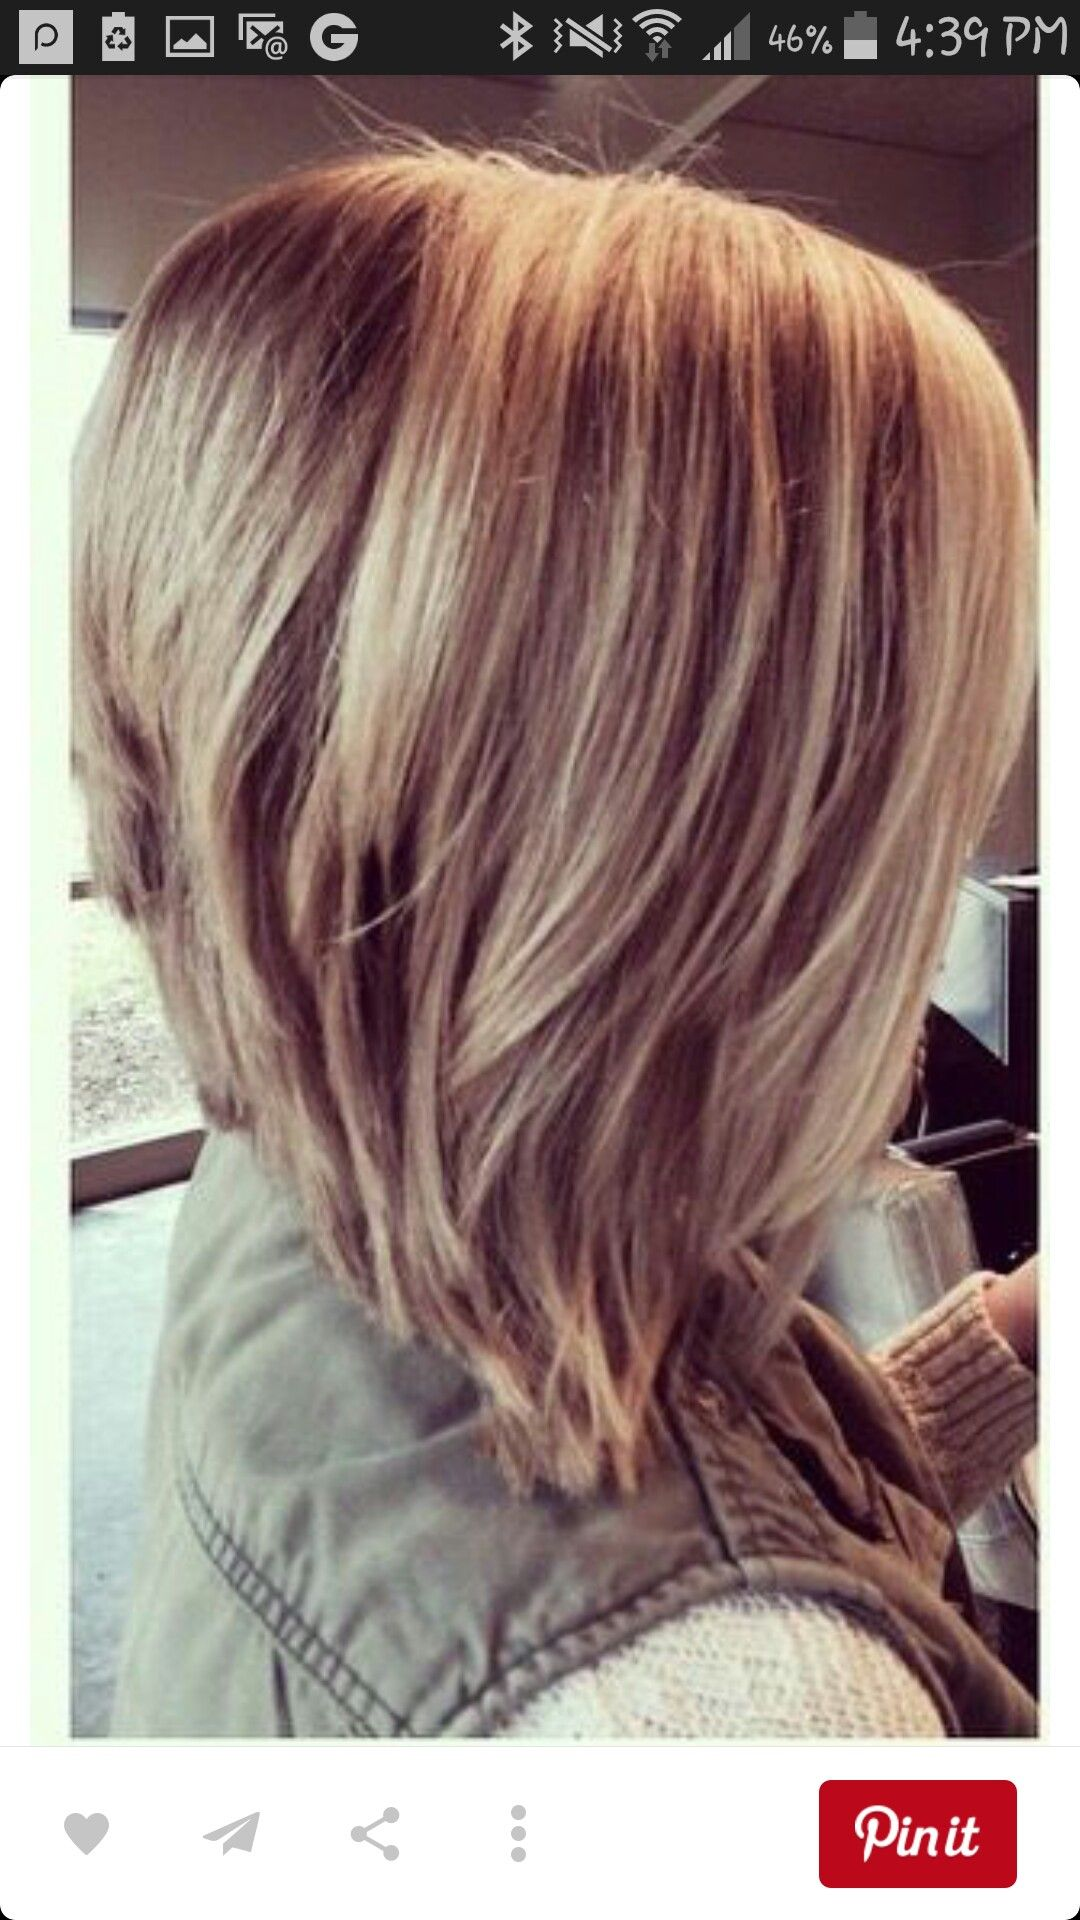 Pin By Brooke Hackworth On Hair Cuts Colors In 2018 Pinterest